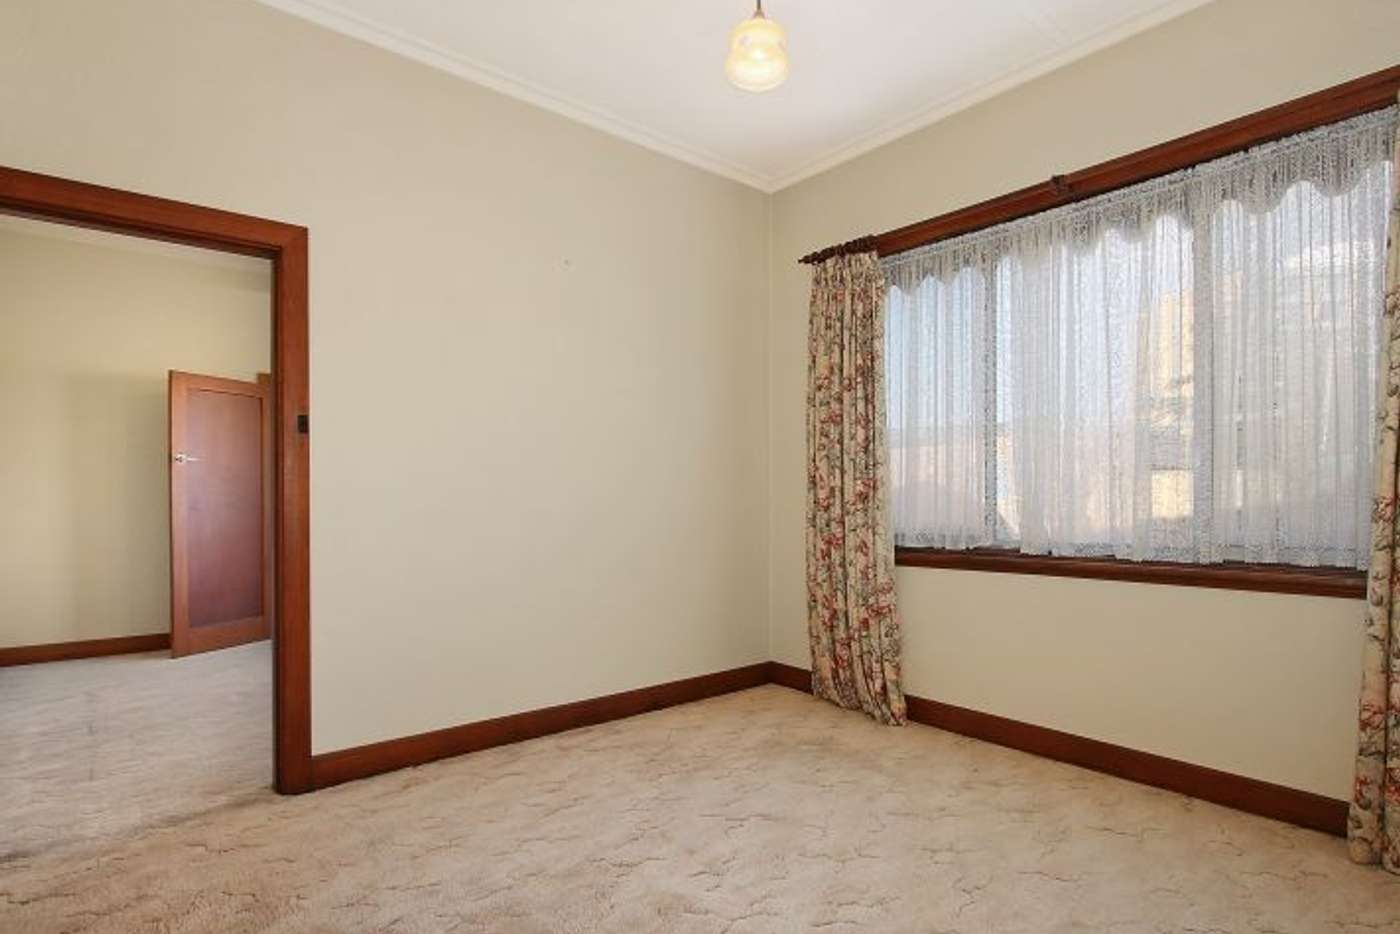 Sixth view of Homely townhouse listing, 516 Creek Street, Albury NSW 2640